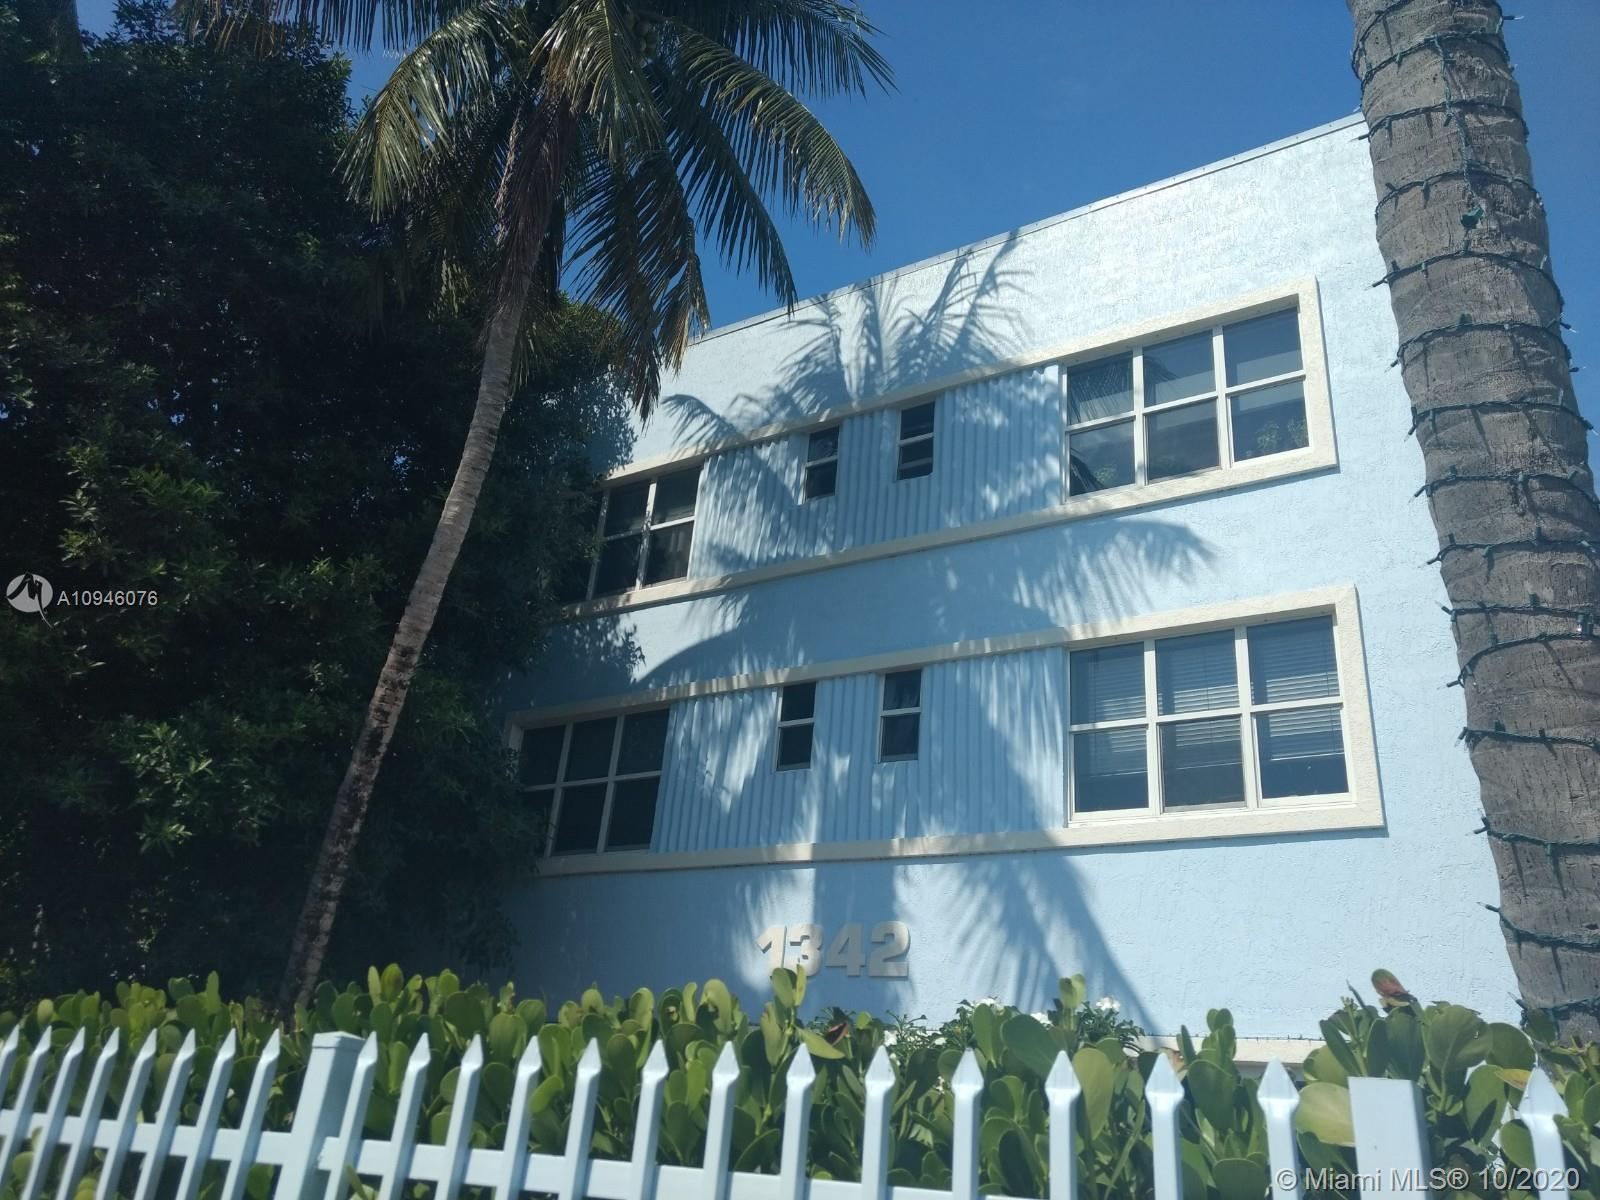 1342 Drexel Ave # 305, Miami Beach, Florida 33139, 2 Bedrooms Bedrooms, ,2 BathroomsBathrooms,Residential,For Sale,1342 Drexel Ave # 305,A10946076